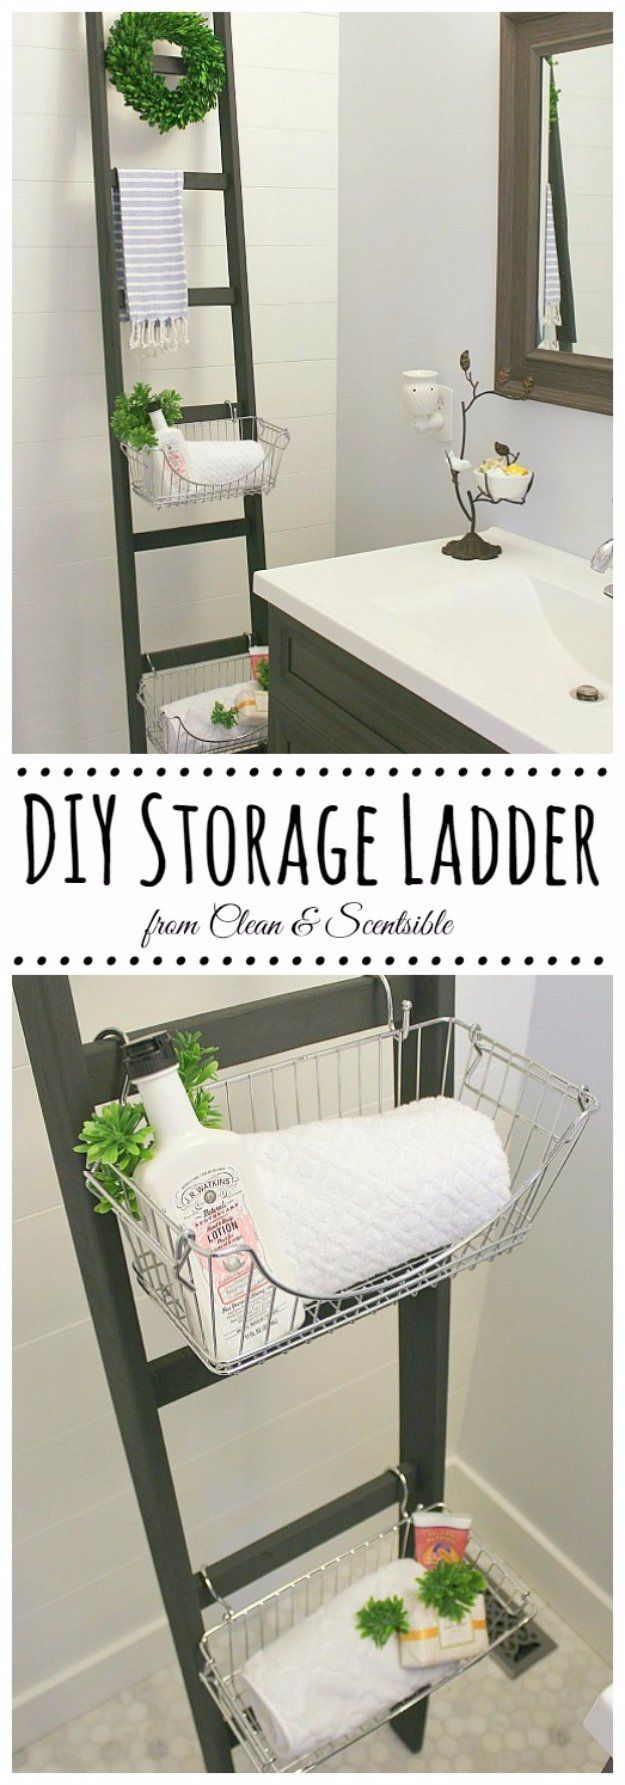 31 Brilliant DIY Decor Ideas for Your BathroomBest 25  Bathroom ladder ideas on Pinterest   Bathroom ladder  . Diy Small Bathroom Decor Pinterest. Home Design Ideas